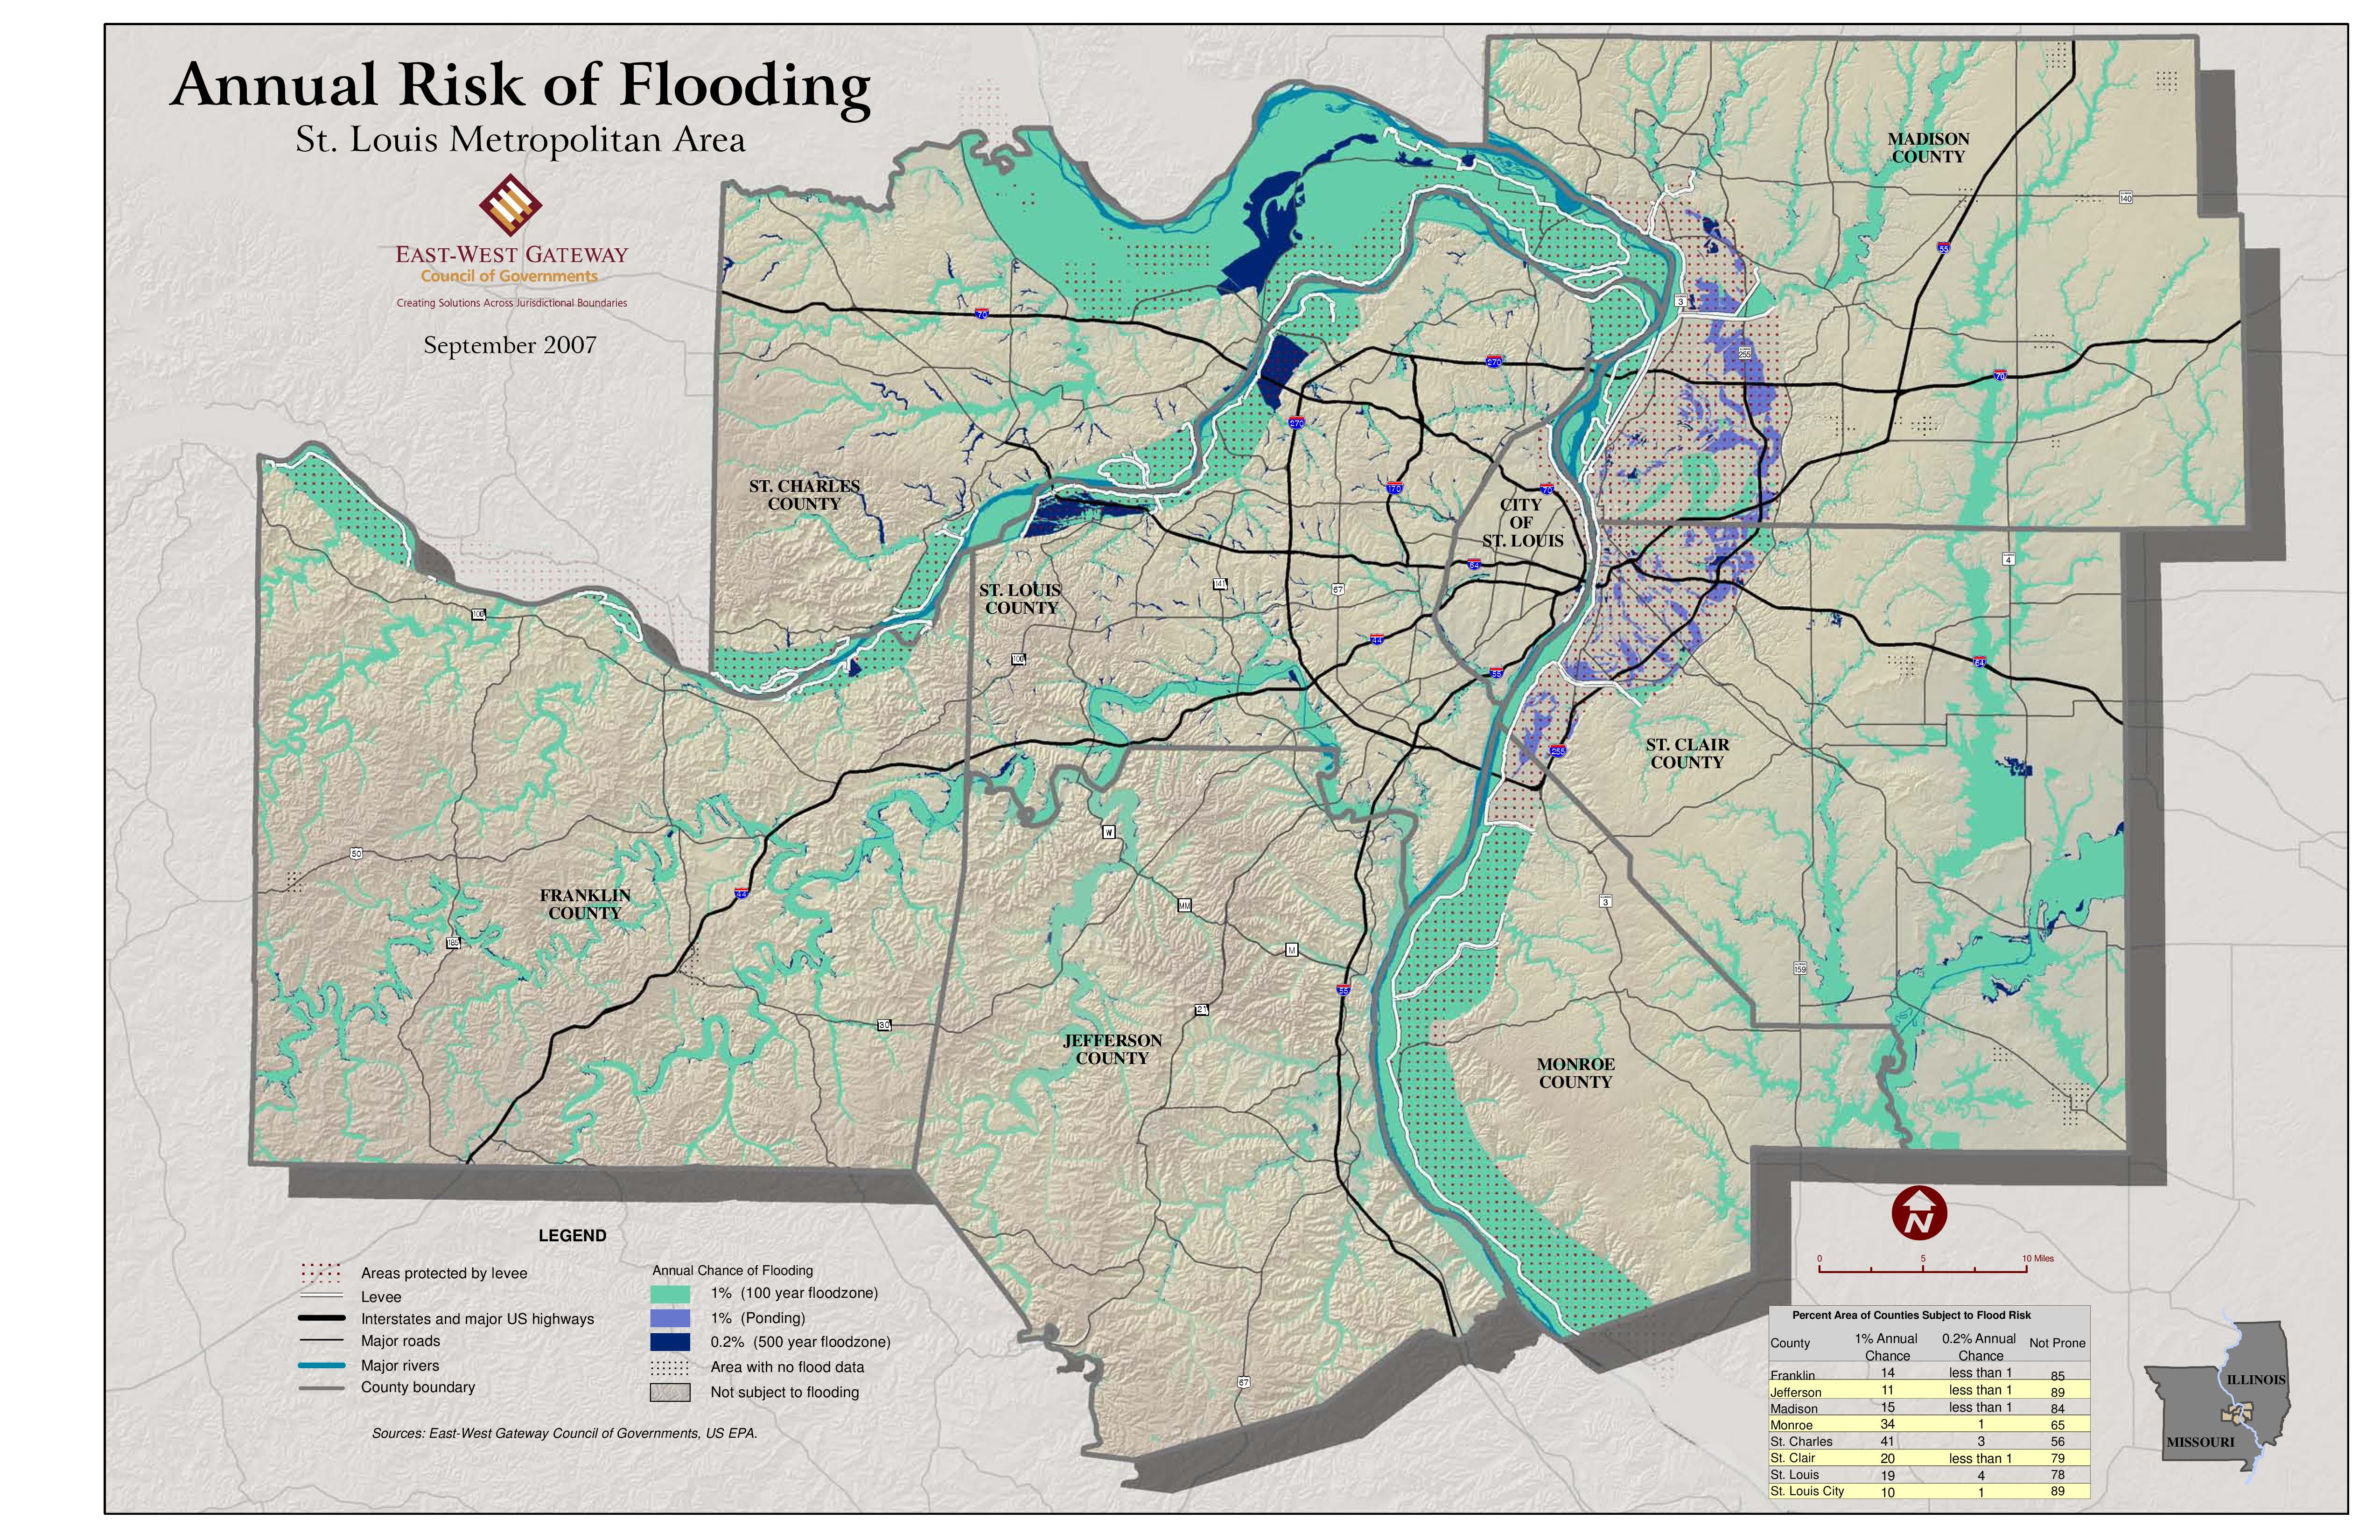 Annual Risk of Flooding, St. Louis Metro | Historical and ... on illinois road work map, illinois watershed map, illinois agriculture map, illinois climate data, illinois tornado map, illinois wind map, illinois precipitation map, illinois schools map, illinois river flooding, illinois flood map, illinois food map, illinois rivers map, illinois temperature map, illinois zoning map, illinois tourism map, illinois earthquake map, illinois weather map, missouri flood risk map, illinois crime map, illinois floodplain map,